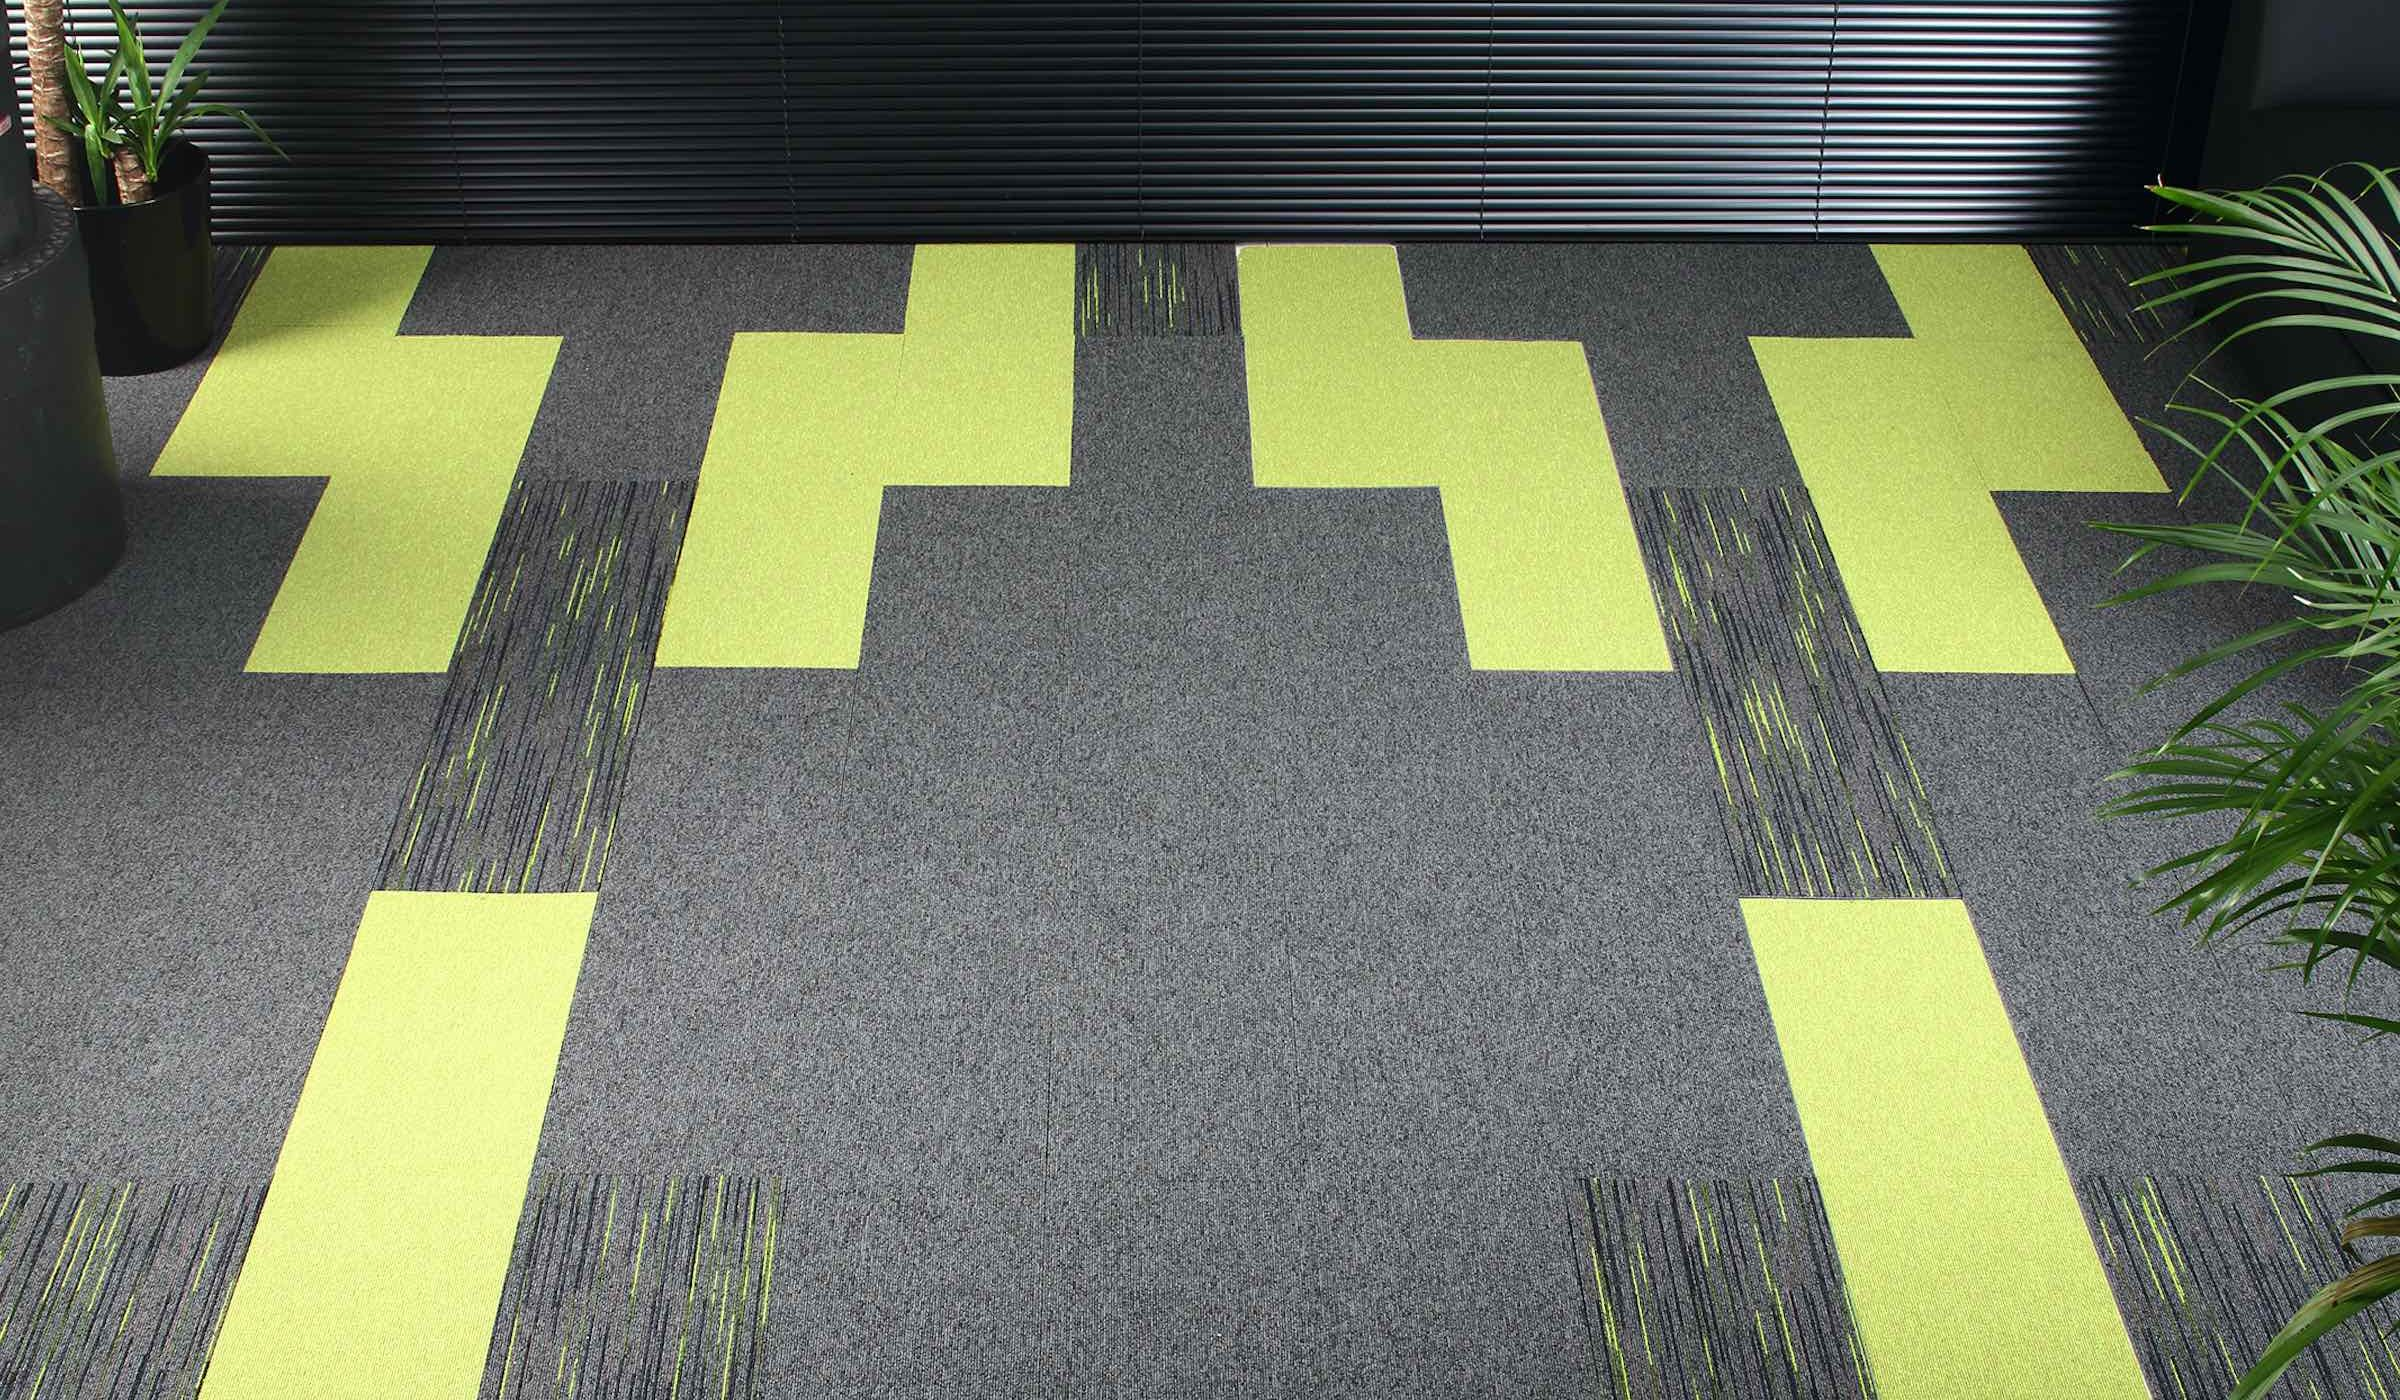 Design Dek | Paragon Carpet Tiles | Commercial Carpet Tiles | Design Carpet Tiles 4